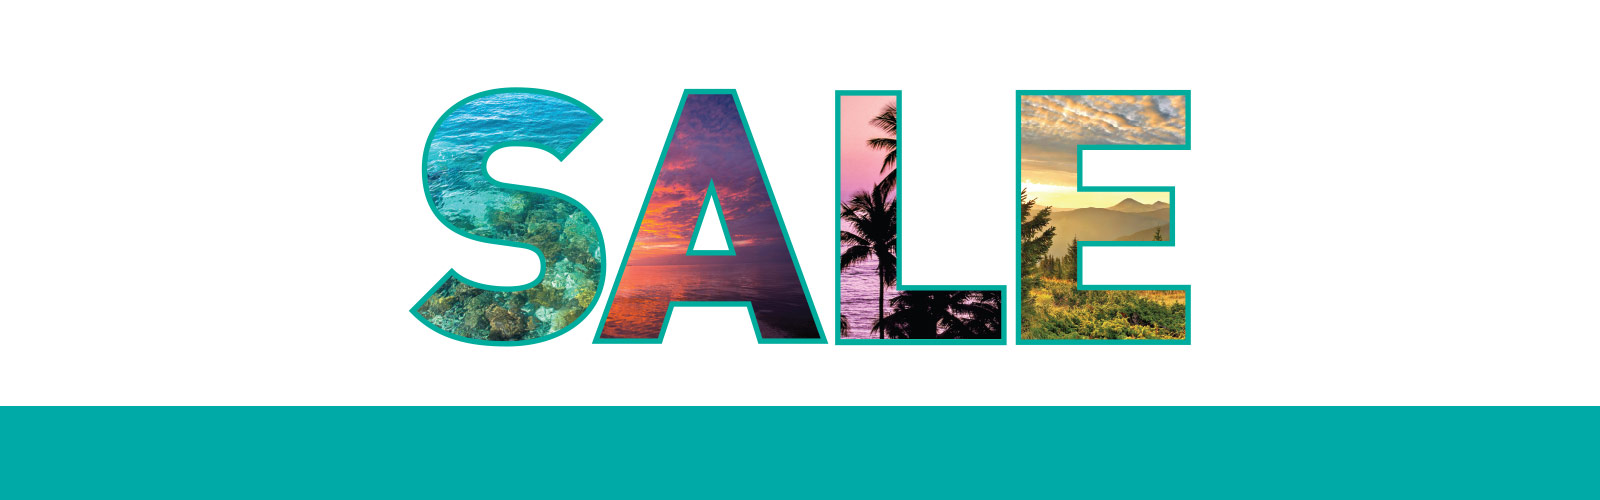 """SALE"" written with destination images inside the letters"